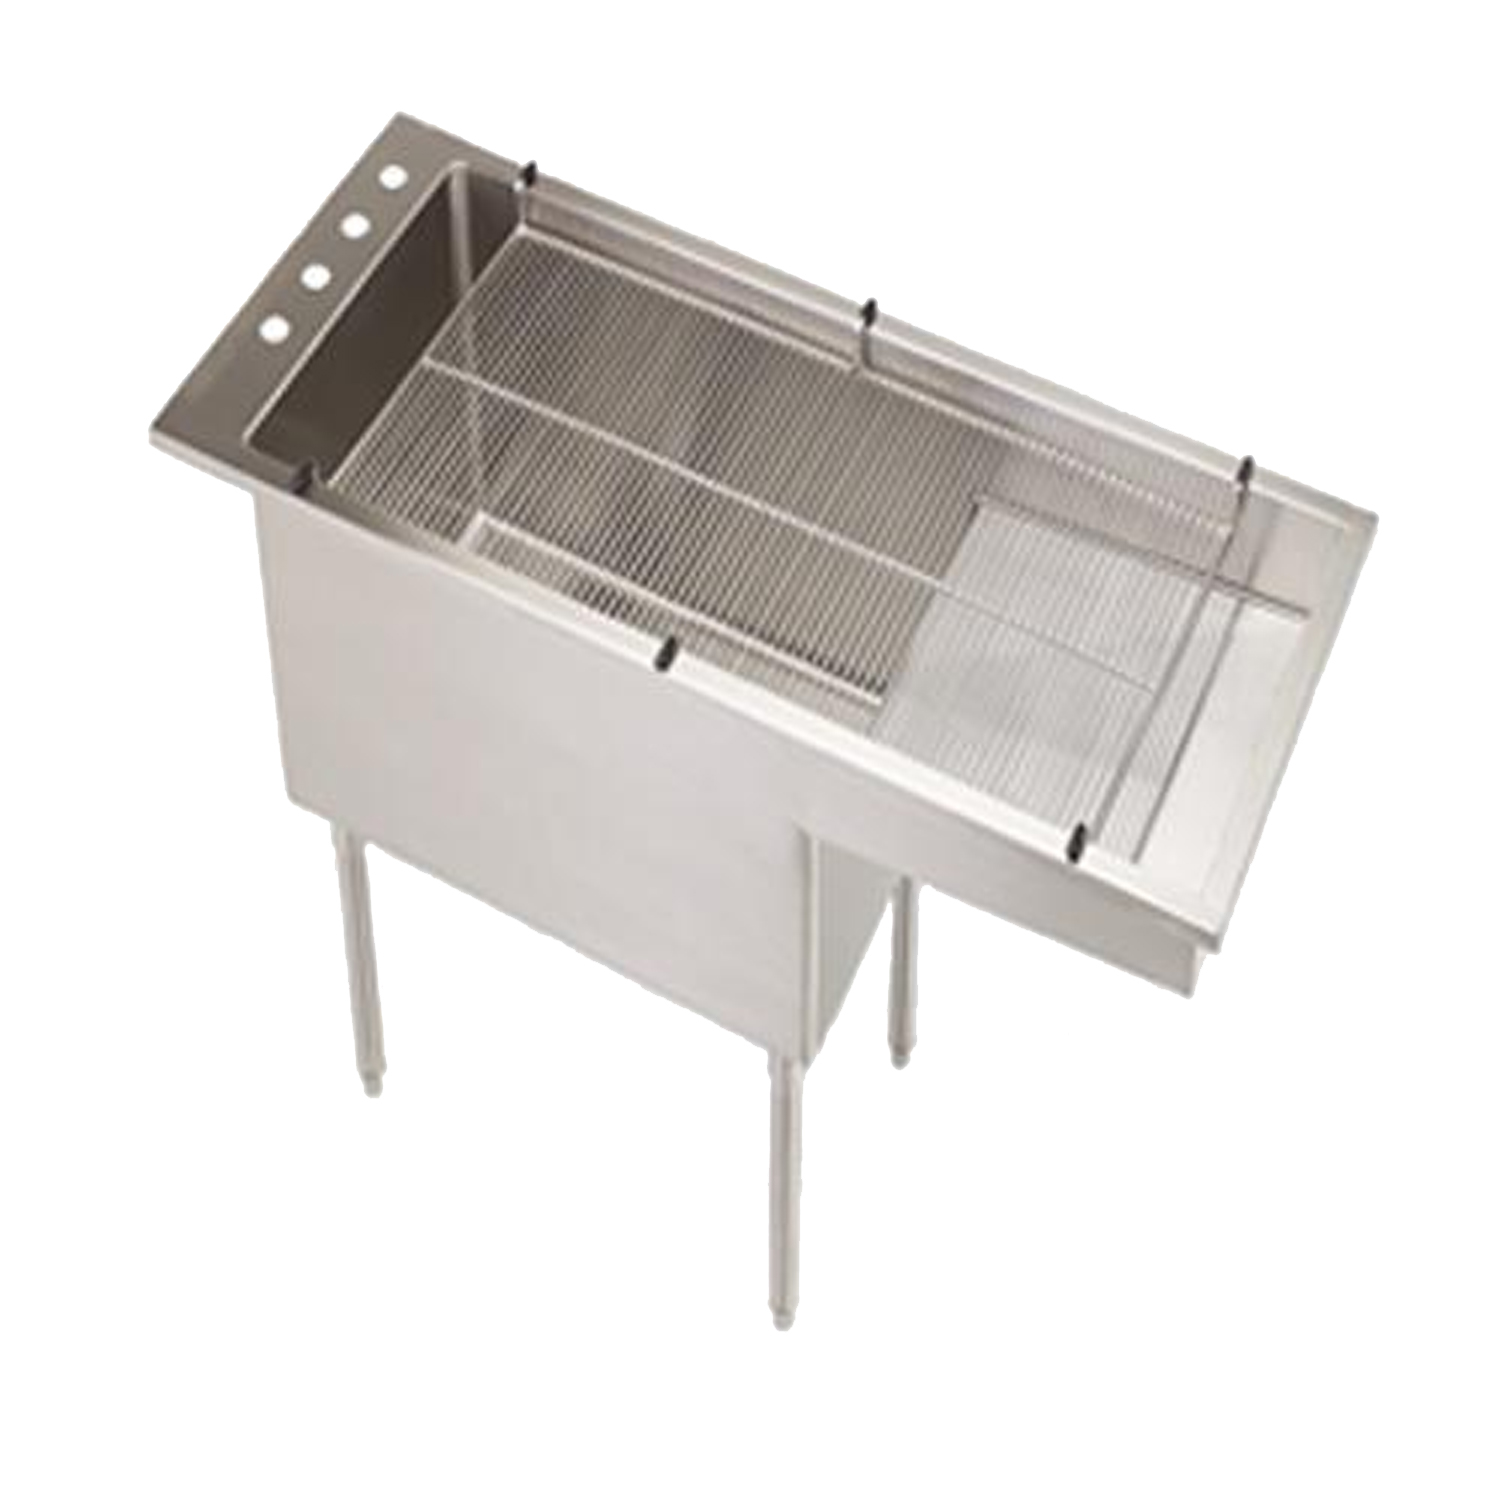 "Bi-Level Tub/Table with Stainless Steel Legs (18"" Deep)"